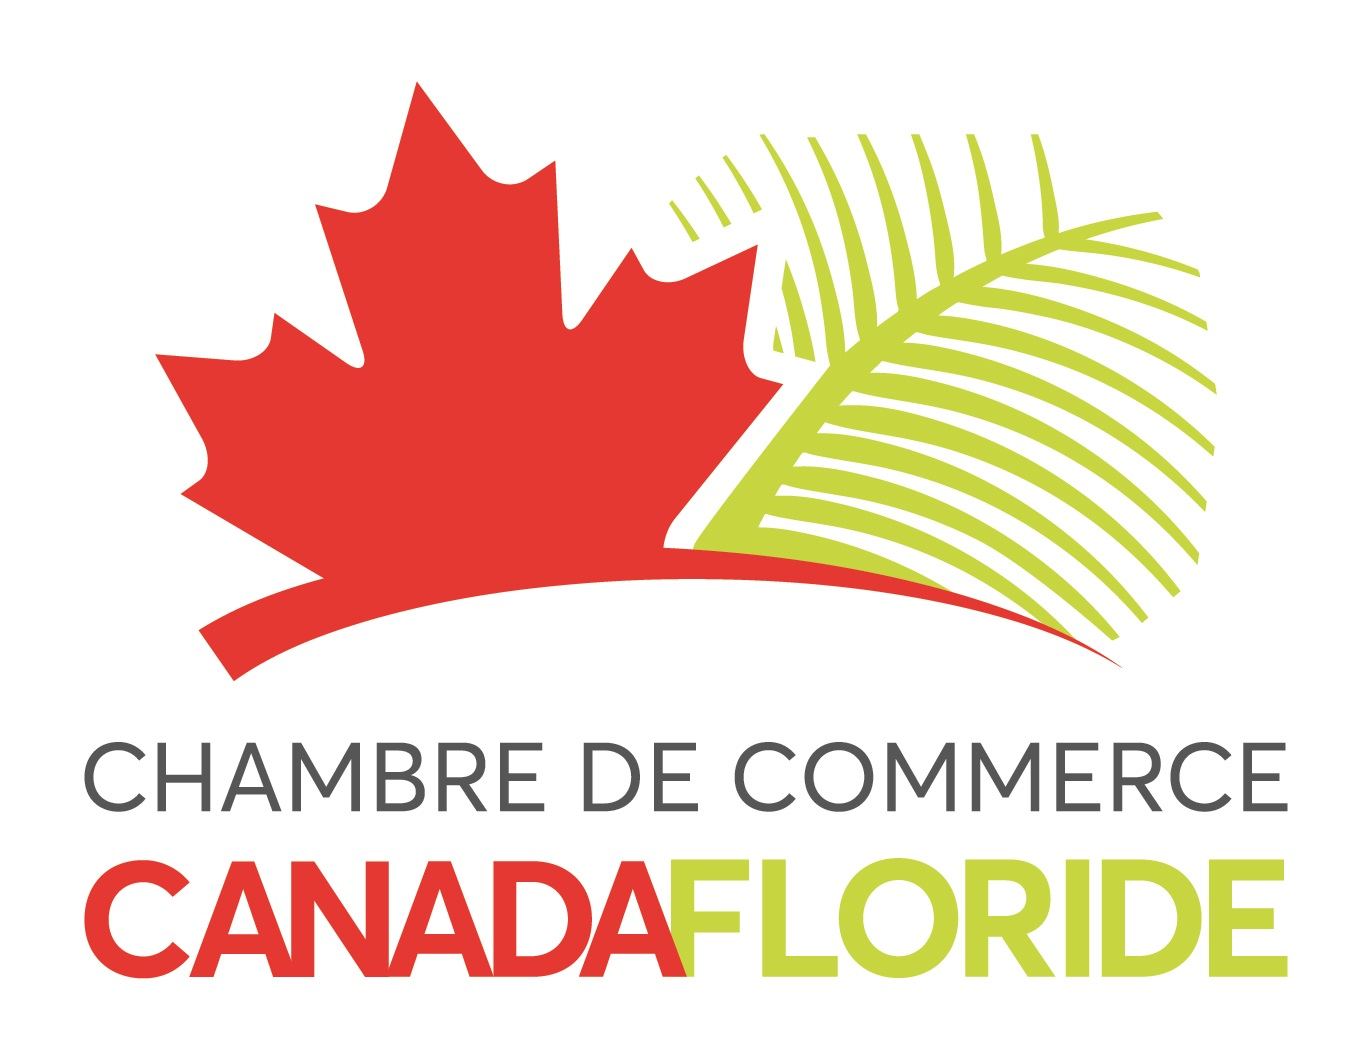 The Quebec-Florida Chamber Of Commerce Expands To Become The Canada-Florida Chamber Of Commerce